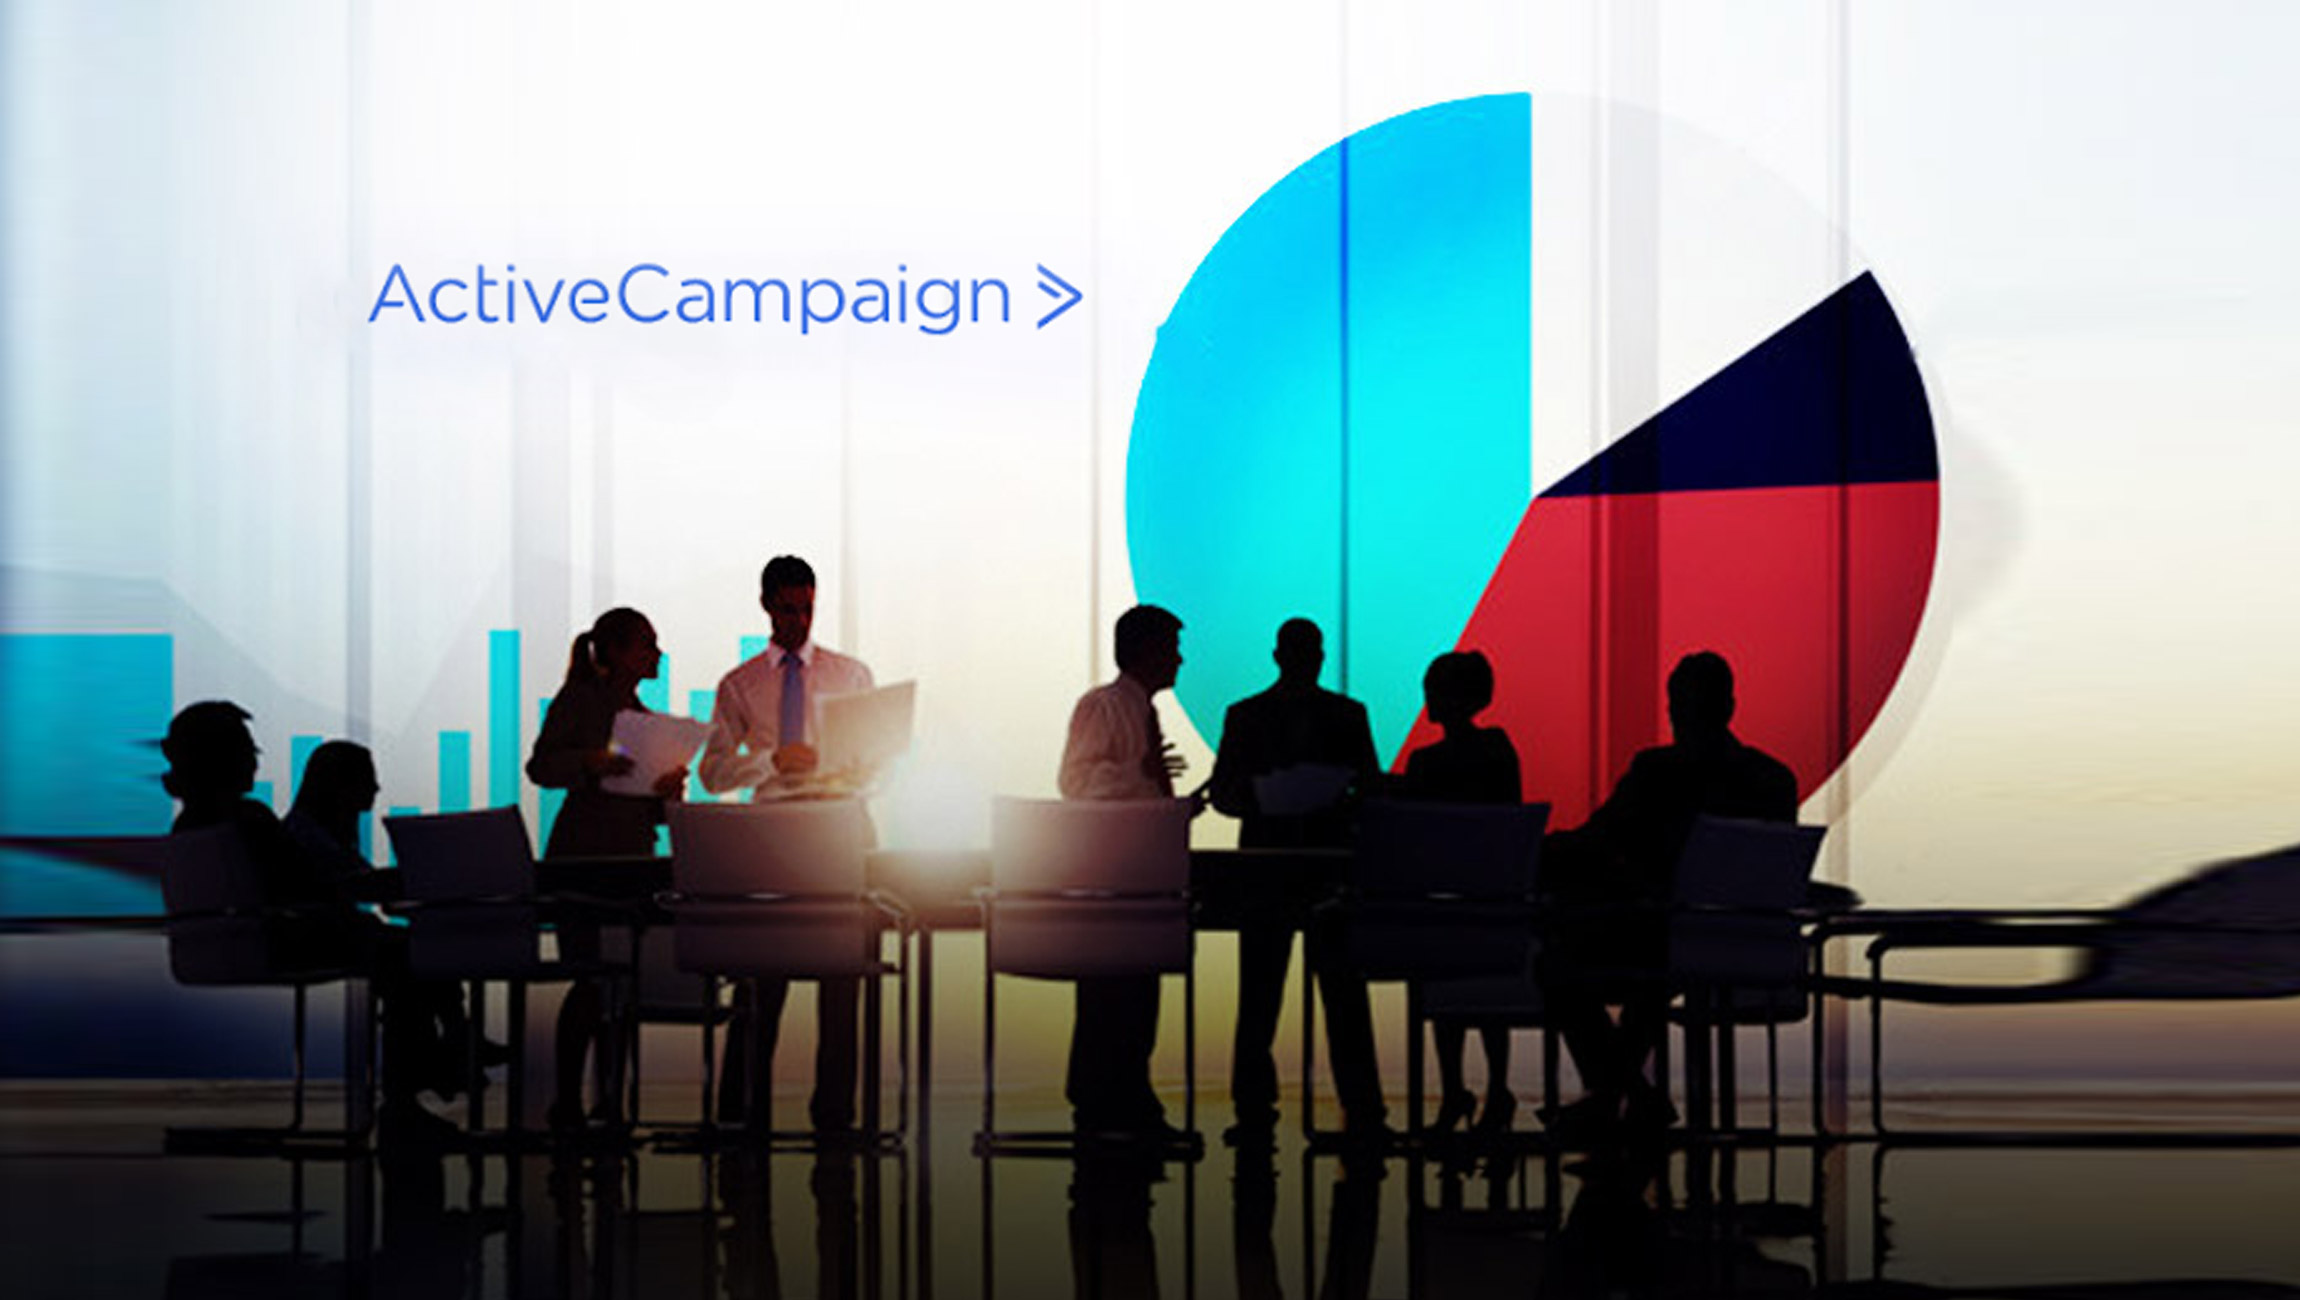 ActiveCampaign Kicks off 'This Just Works' Educational Series Providing Businesses of All Sizes Actionable Tips for Business Growth and Customer Success